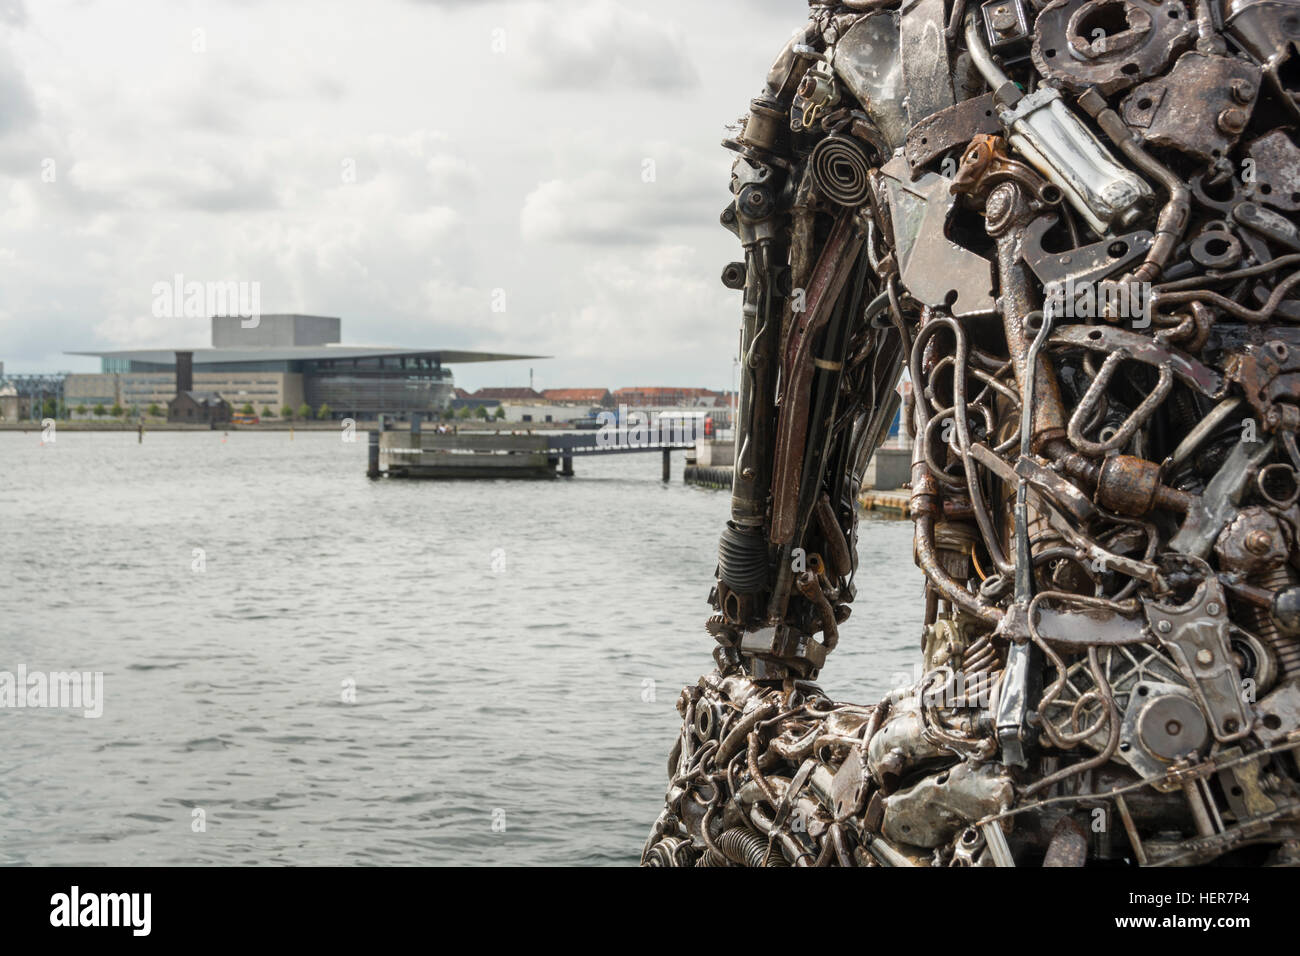 Zinkglobal, artwork made of car and engine parts that sits on the waterfront at Frederikshavn, Copenhagen. Stock Photo